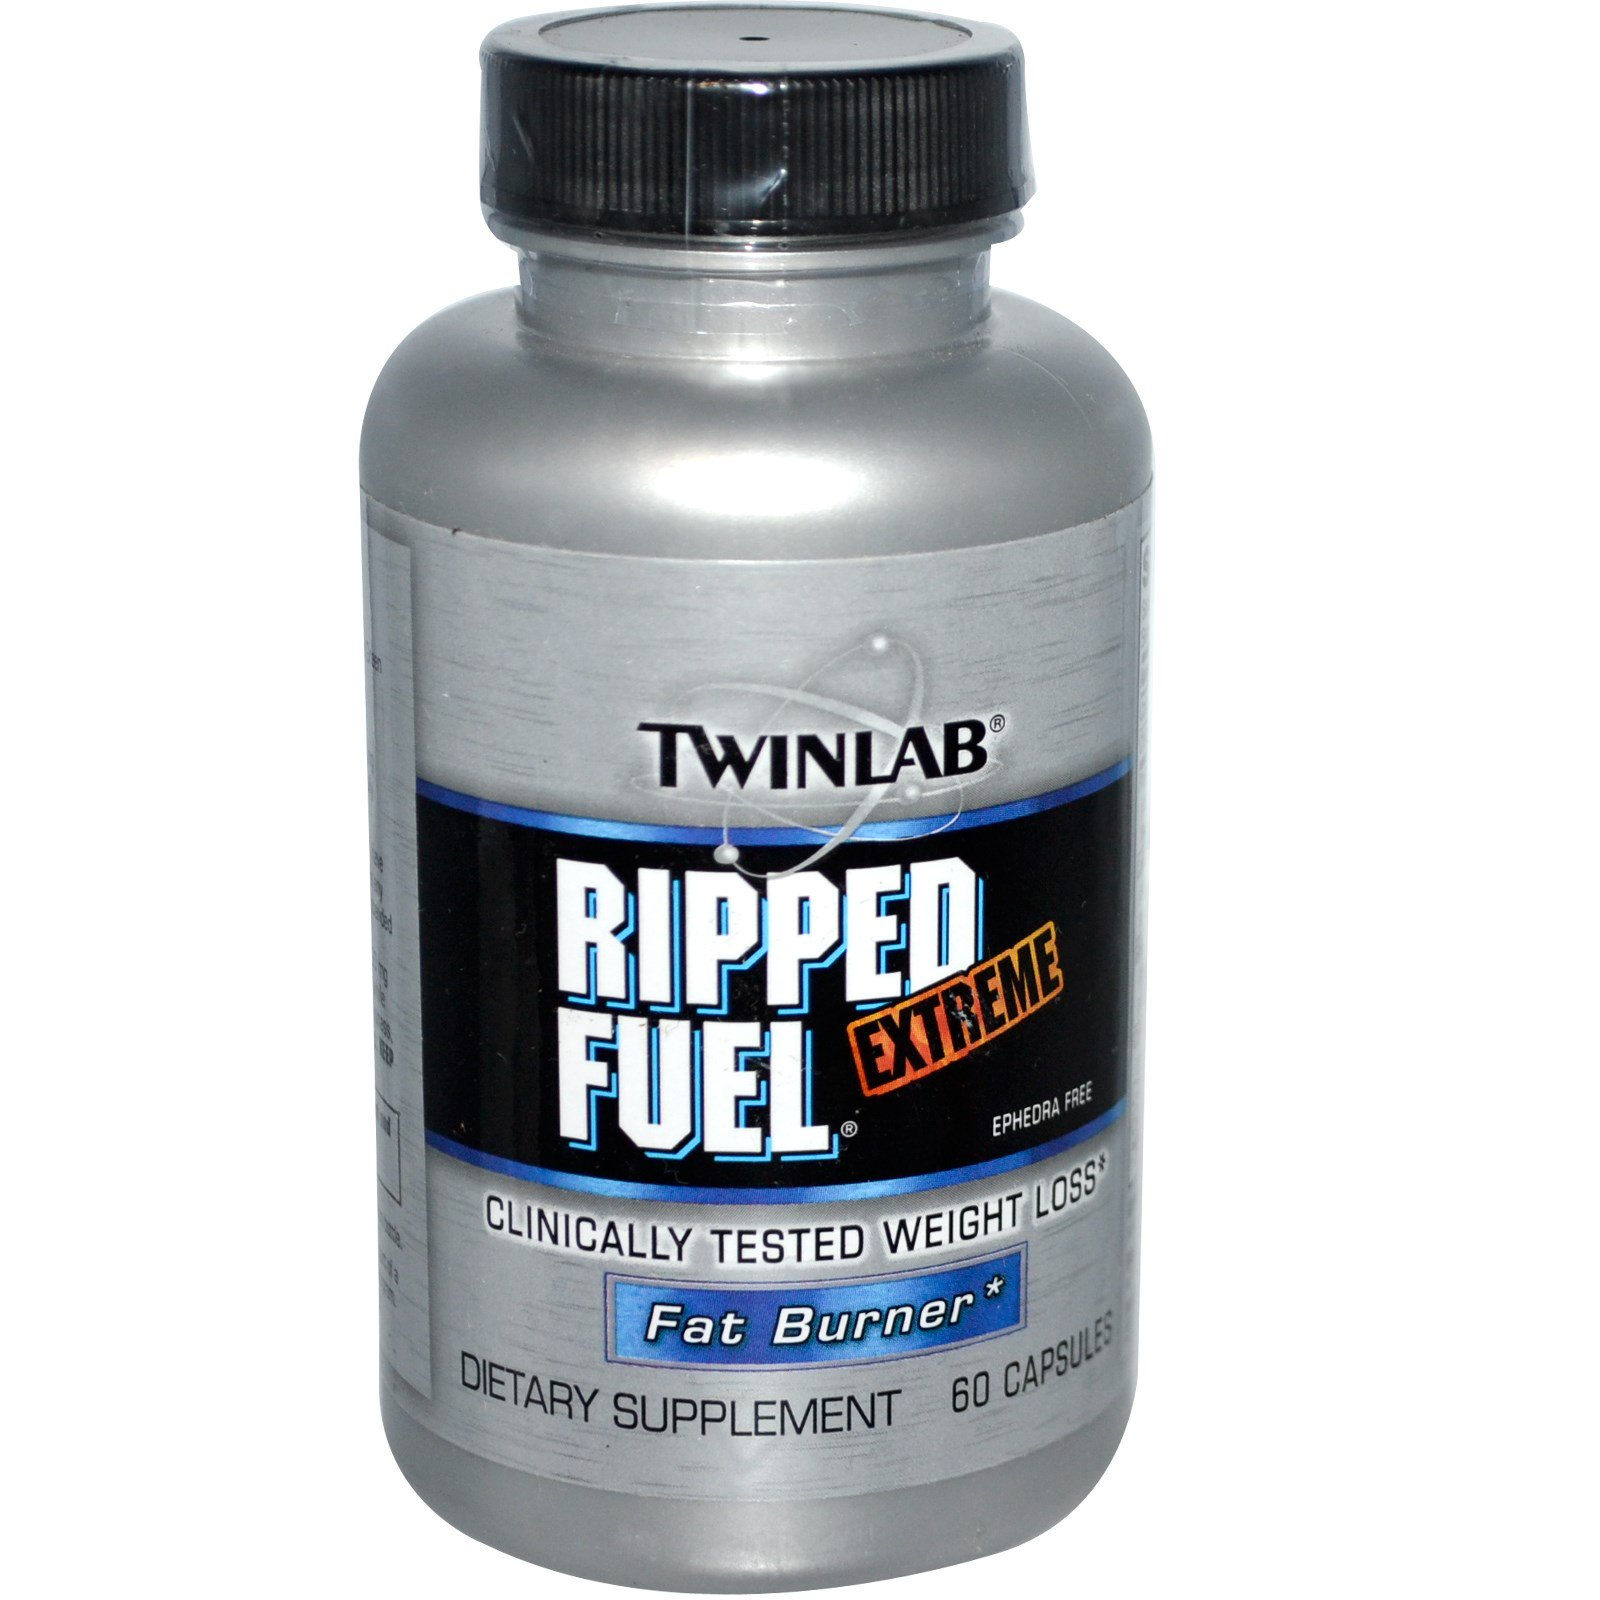 twinlab ripped fuel extreme fat burner 60 capsules. Black Bedroom Furniture Sets. Home Design Ideas